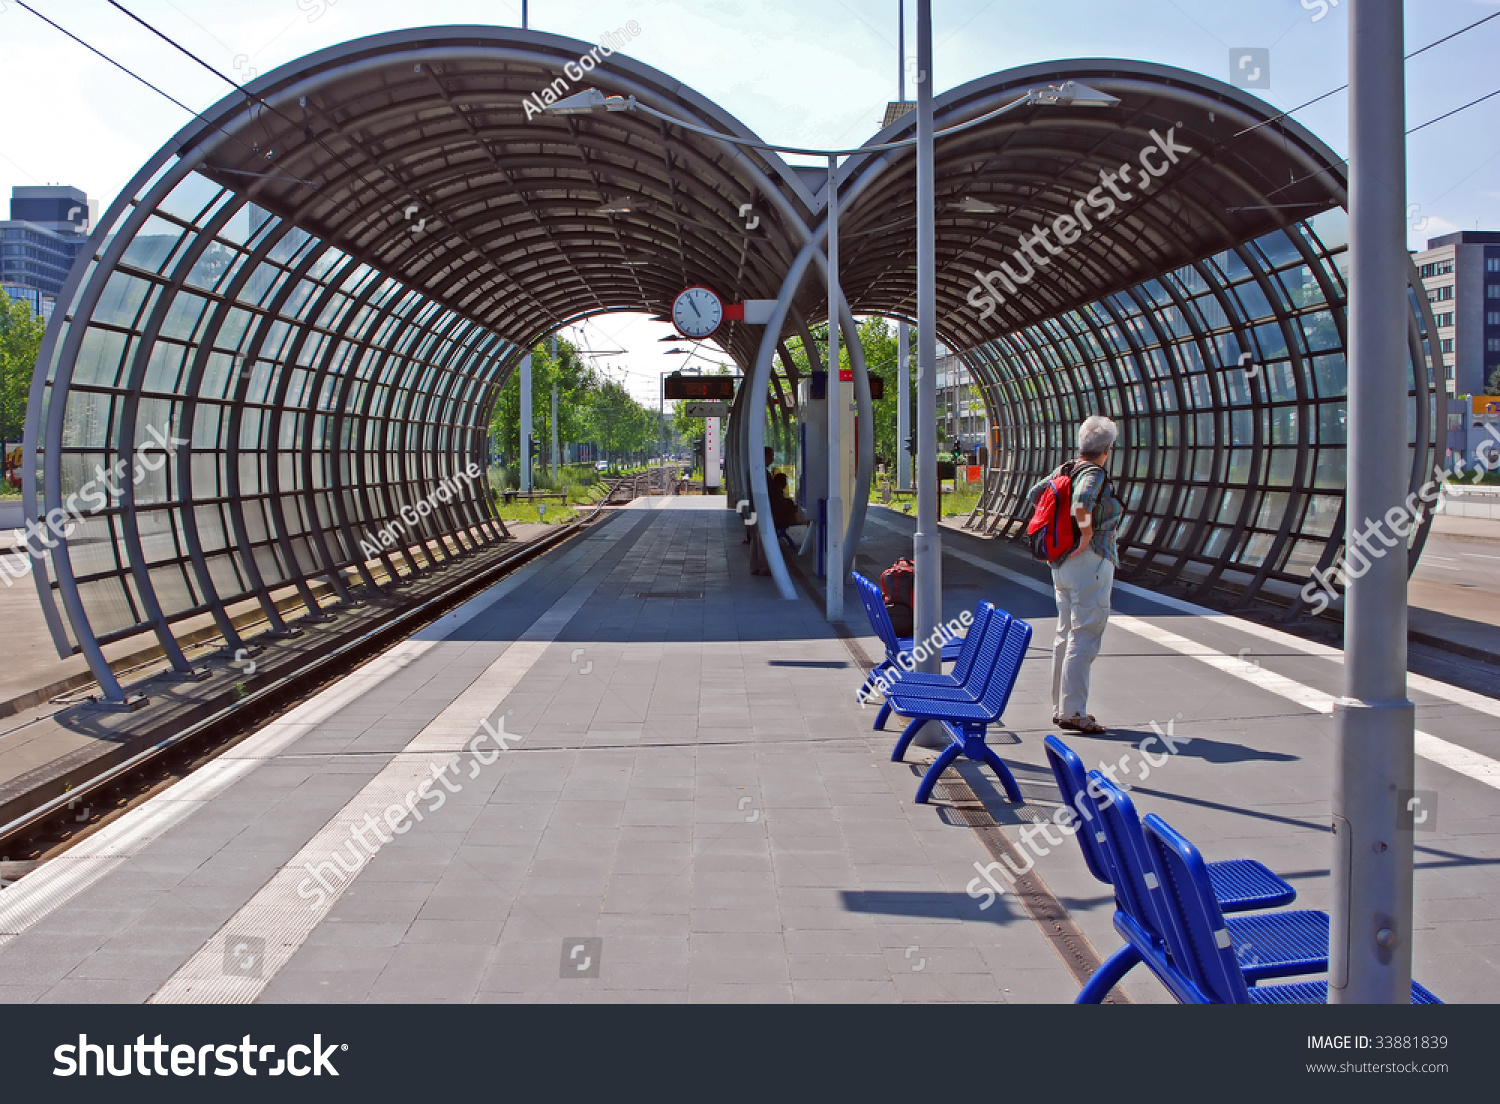 olafpalmeallee rapid rail station bonn germany stock photo 33881839 shutterstock. Black Bedroom Furniture Sets. Home Design Ideas